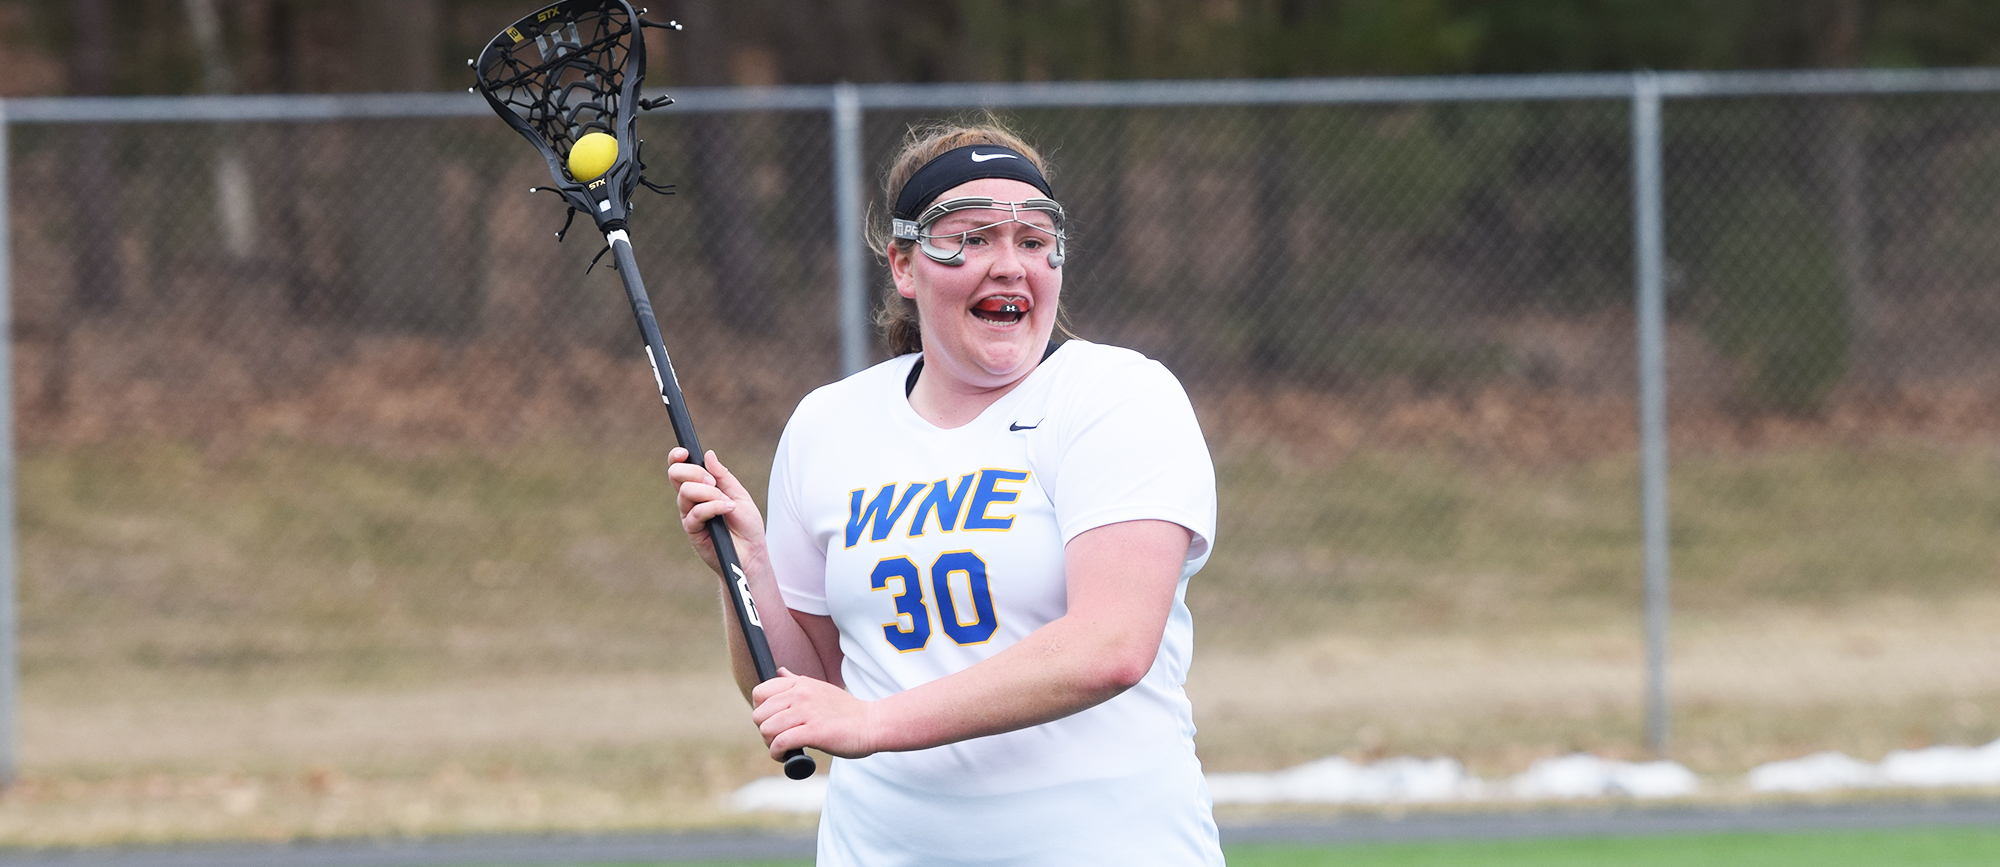 Sophomore Eileen Ruby recorded one goal and three assists in Western New England's 19-7 loss at Roger Williams on Saturday. (Photo by Rachael Margossian)